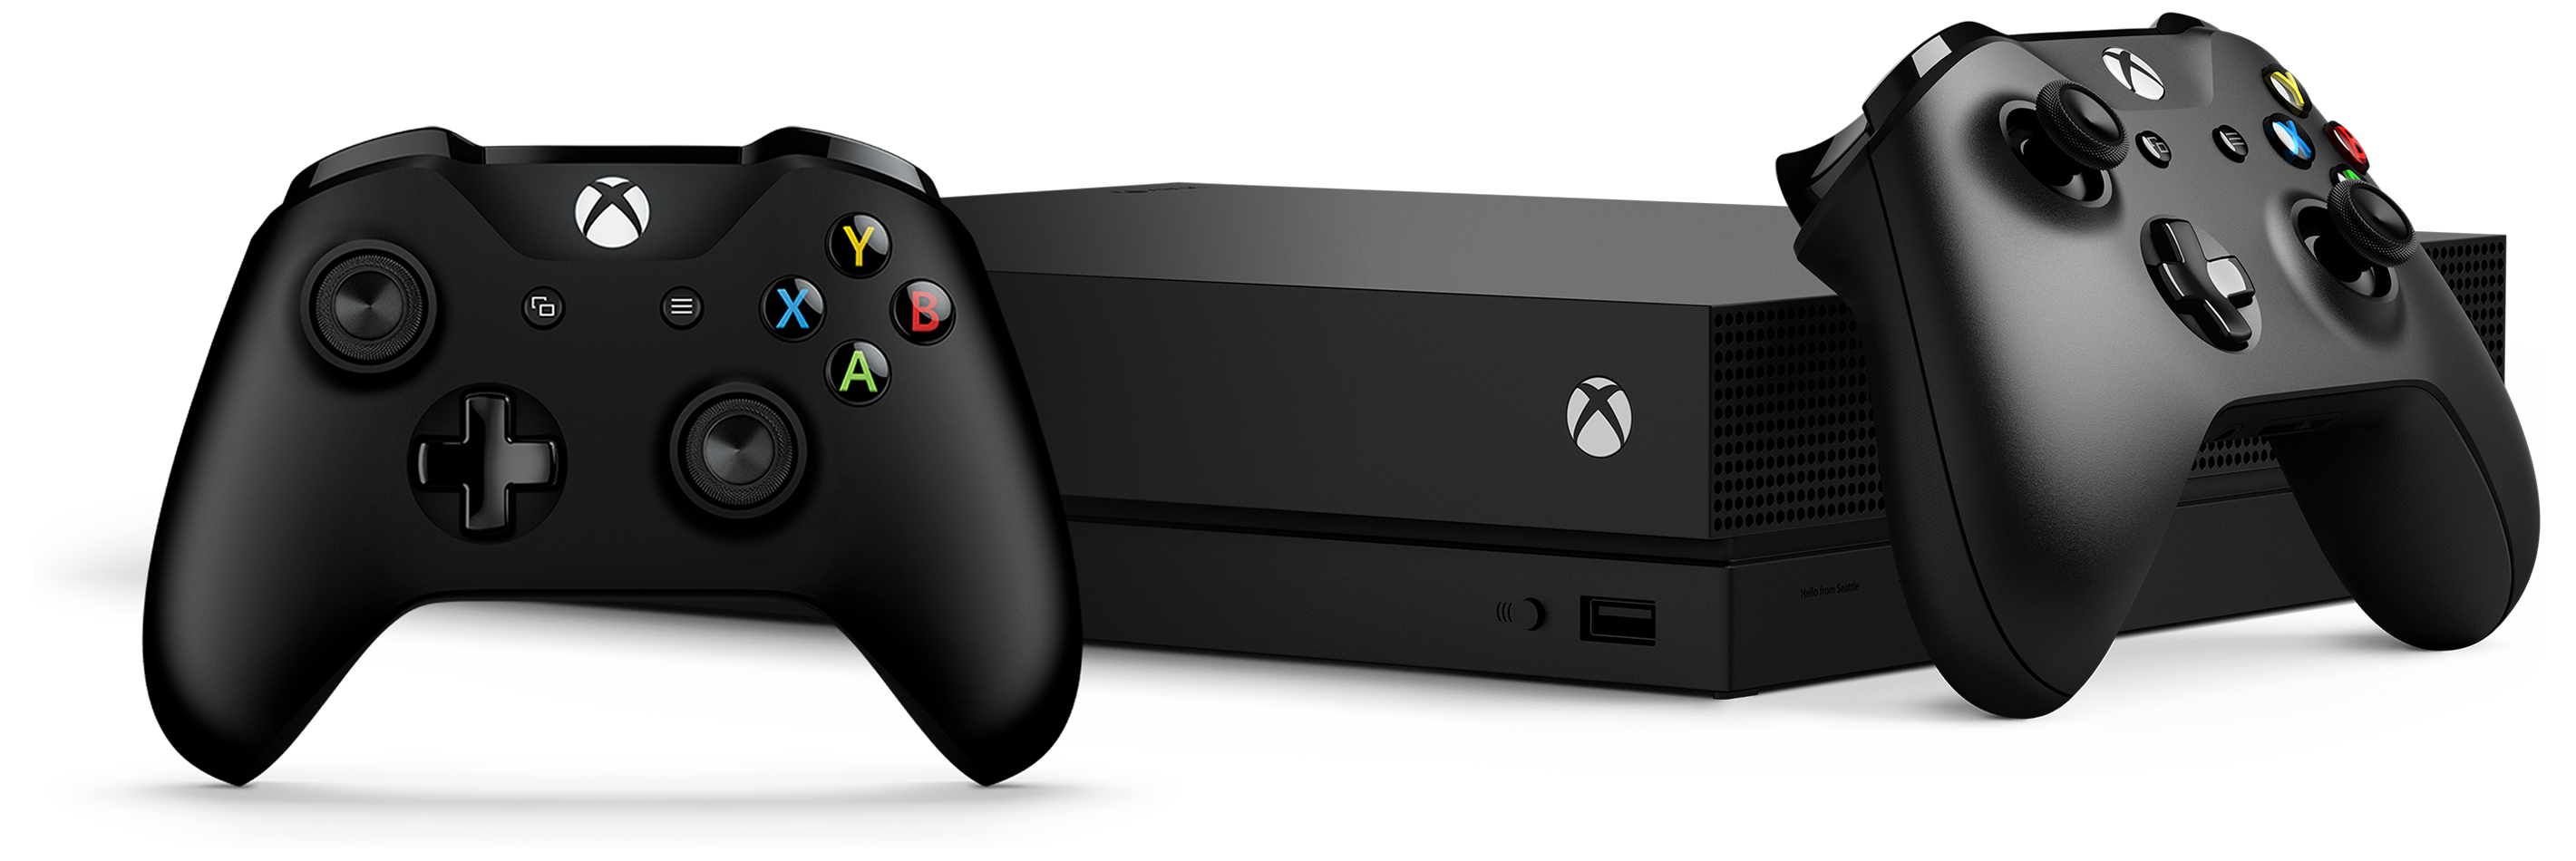 P12075 X1X 2 players Console - £449.99